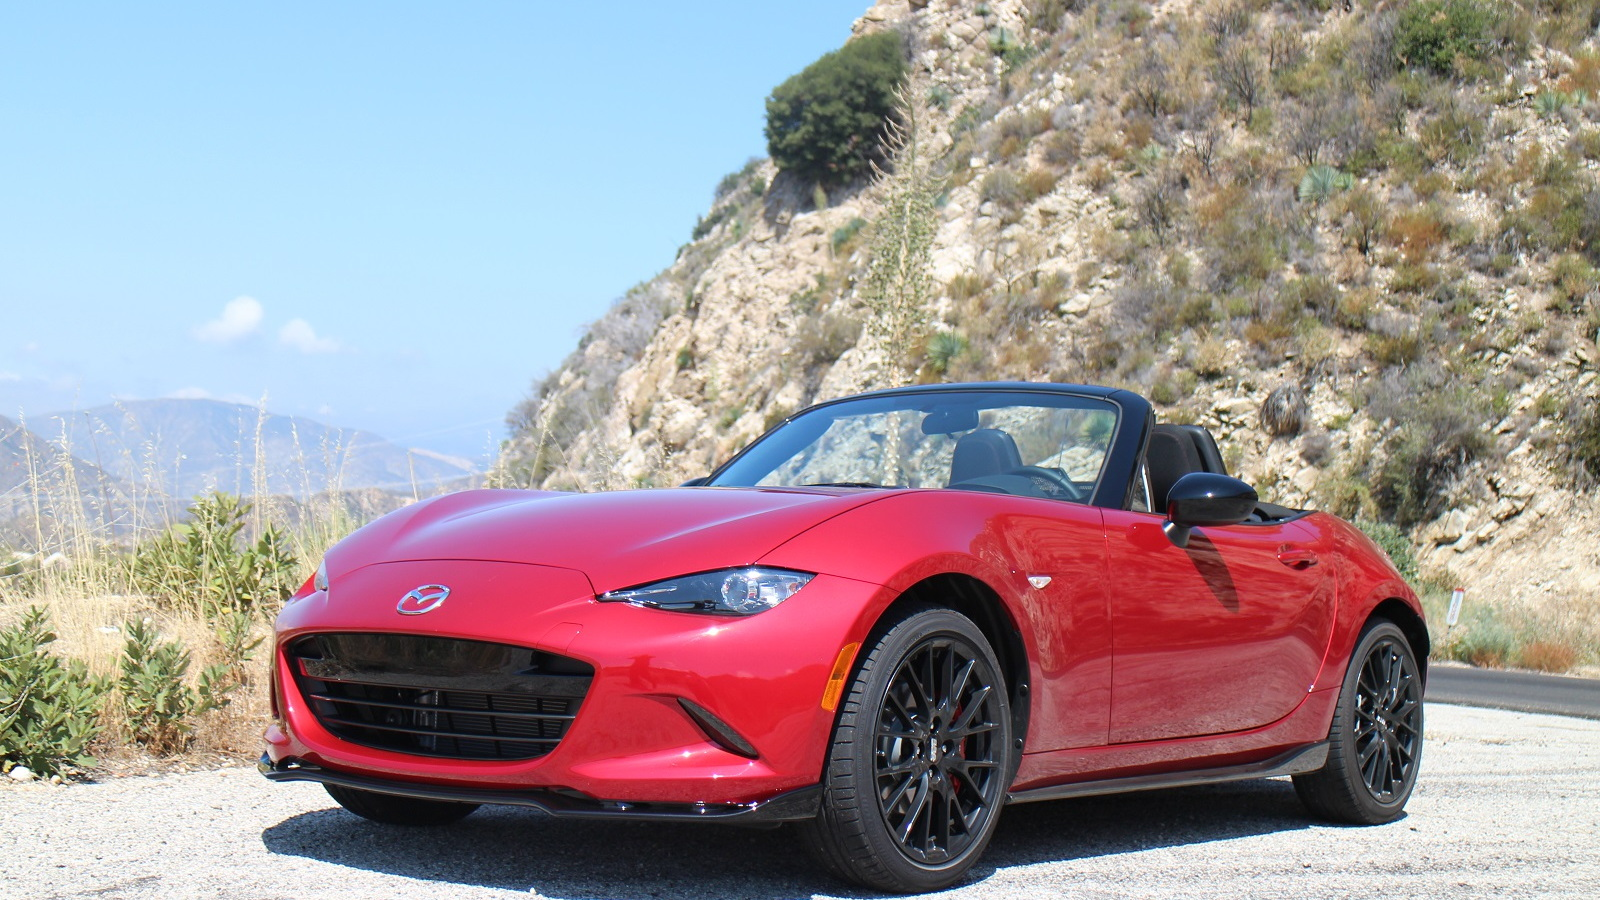 2016 Mazda MX-5 Miata drive, Southern California, July 2015